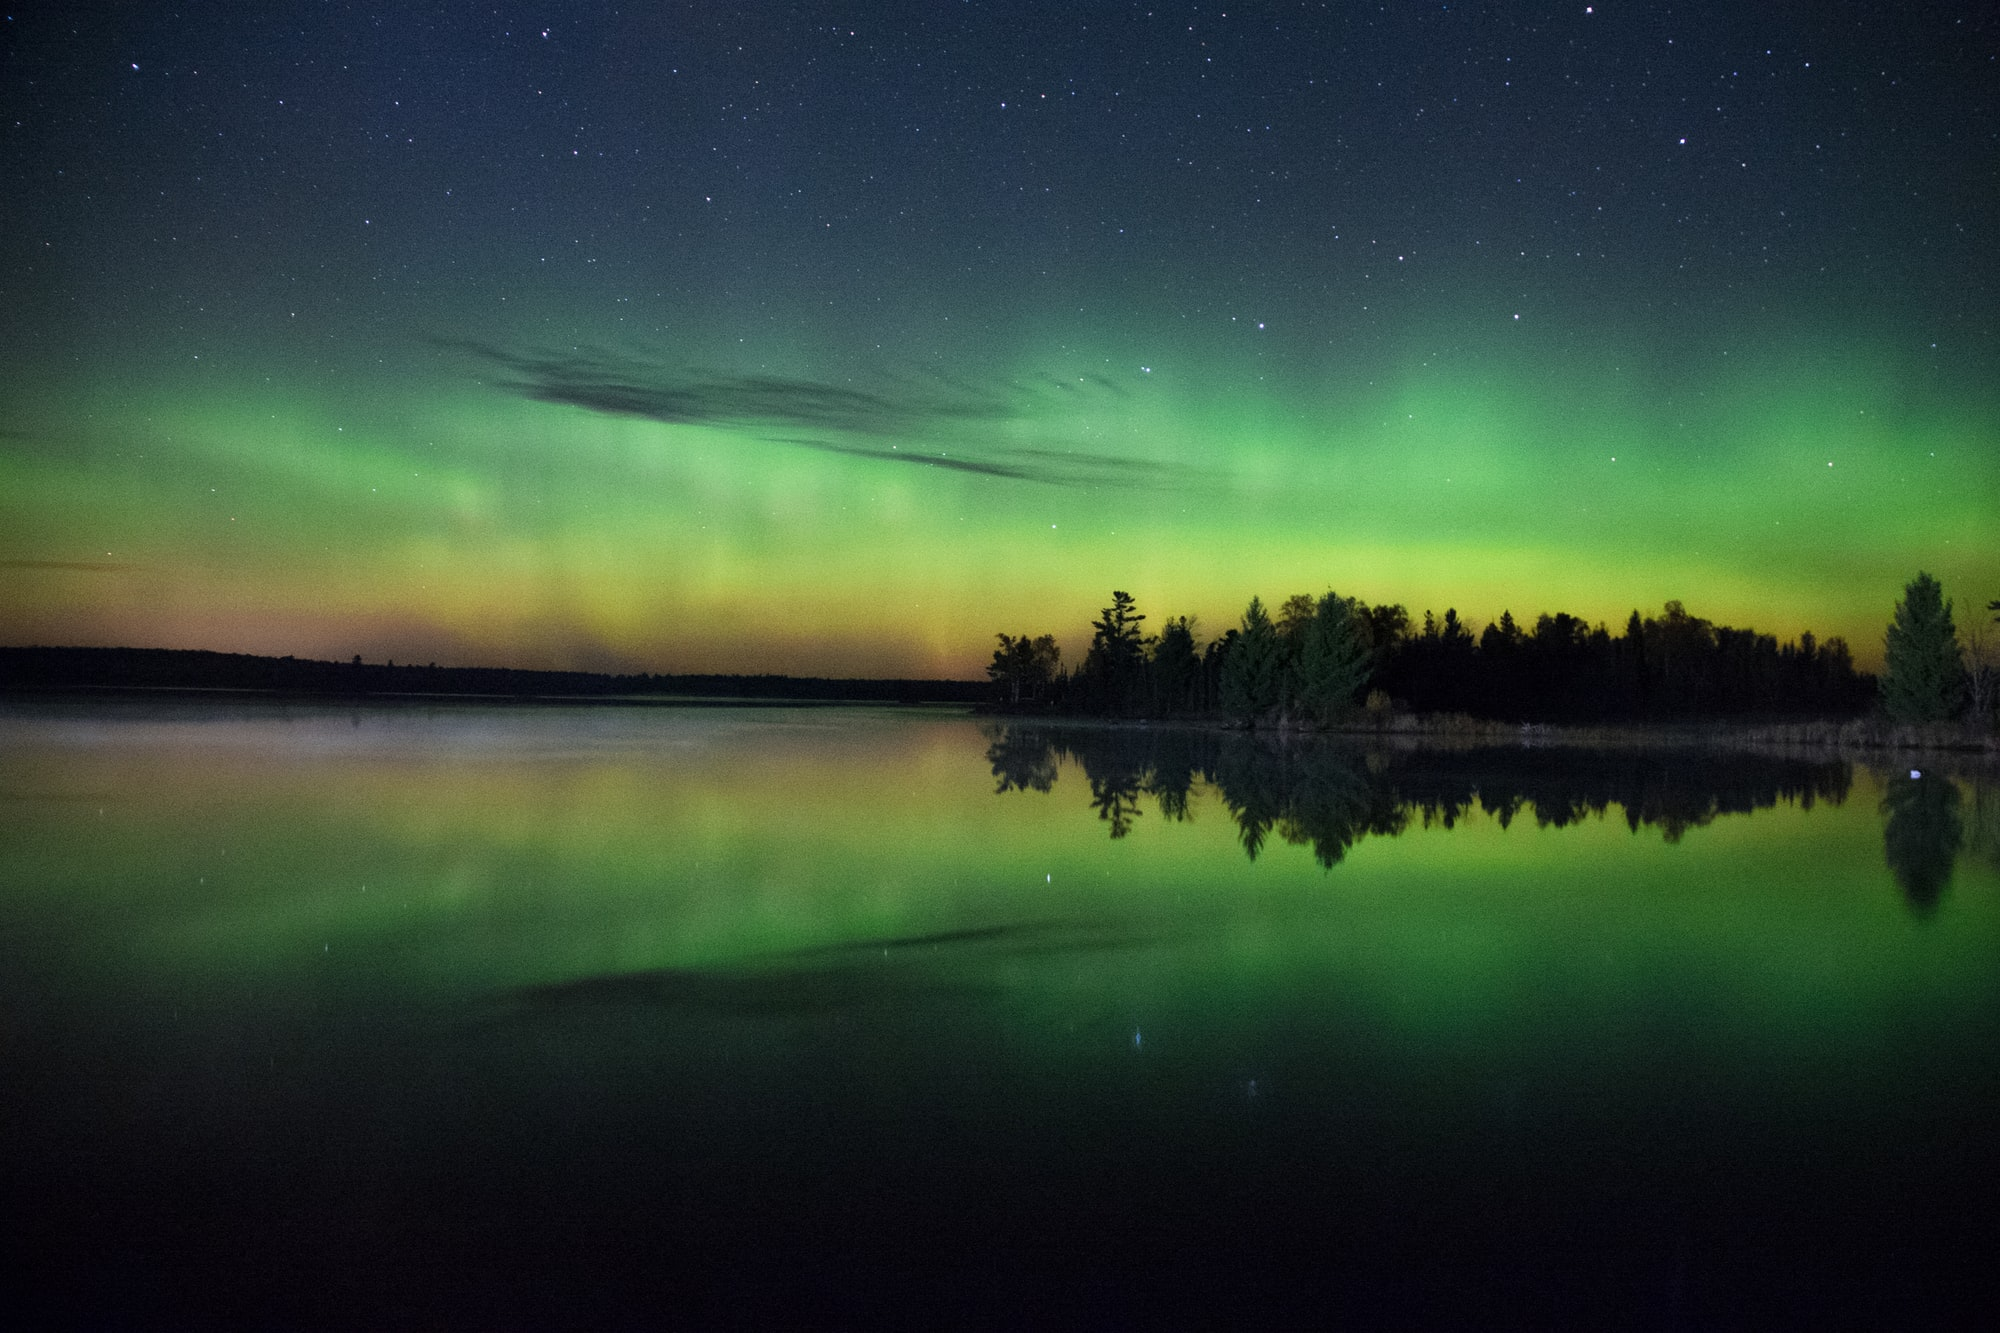 My second time shooting the Northern Lights. Couldn't have asked for a much better spot to watch them.